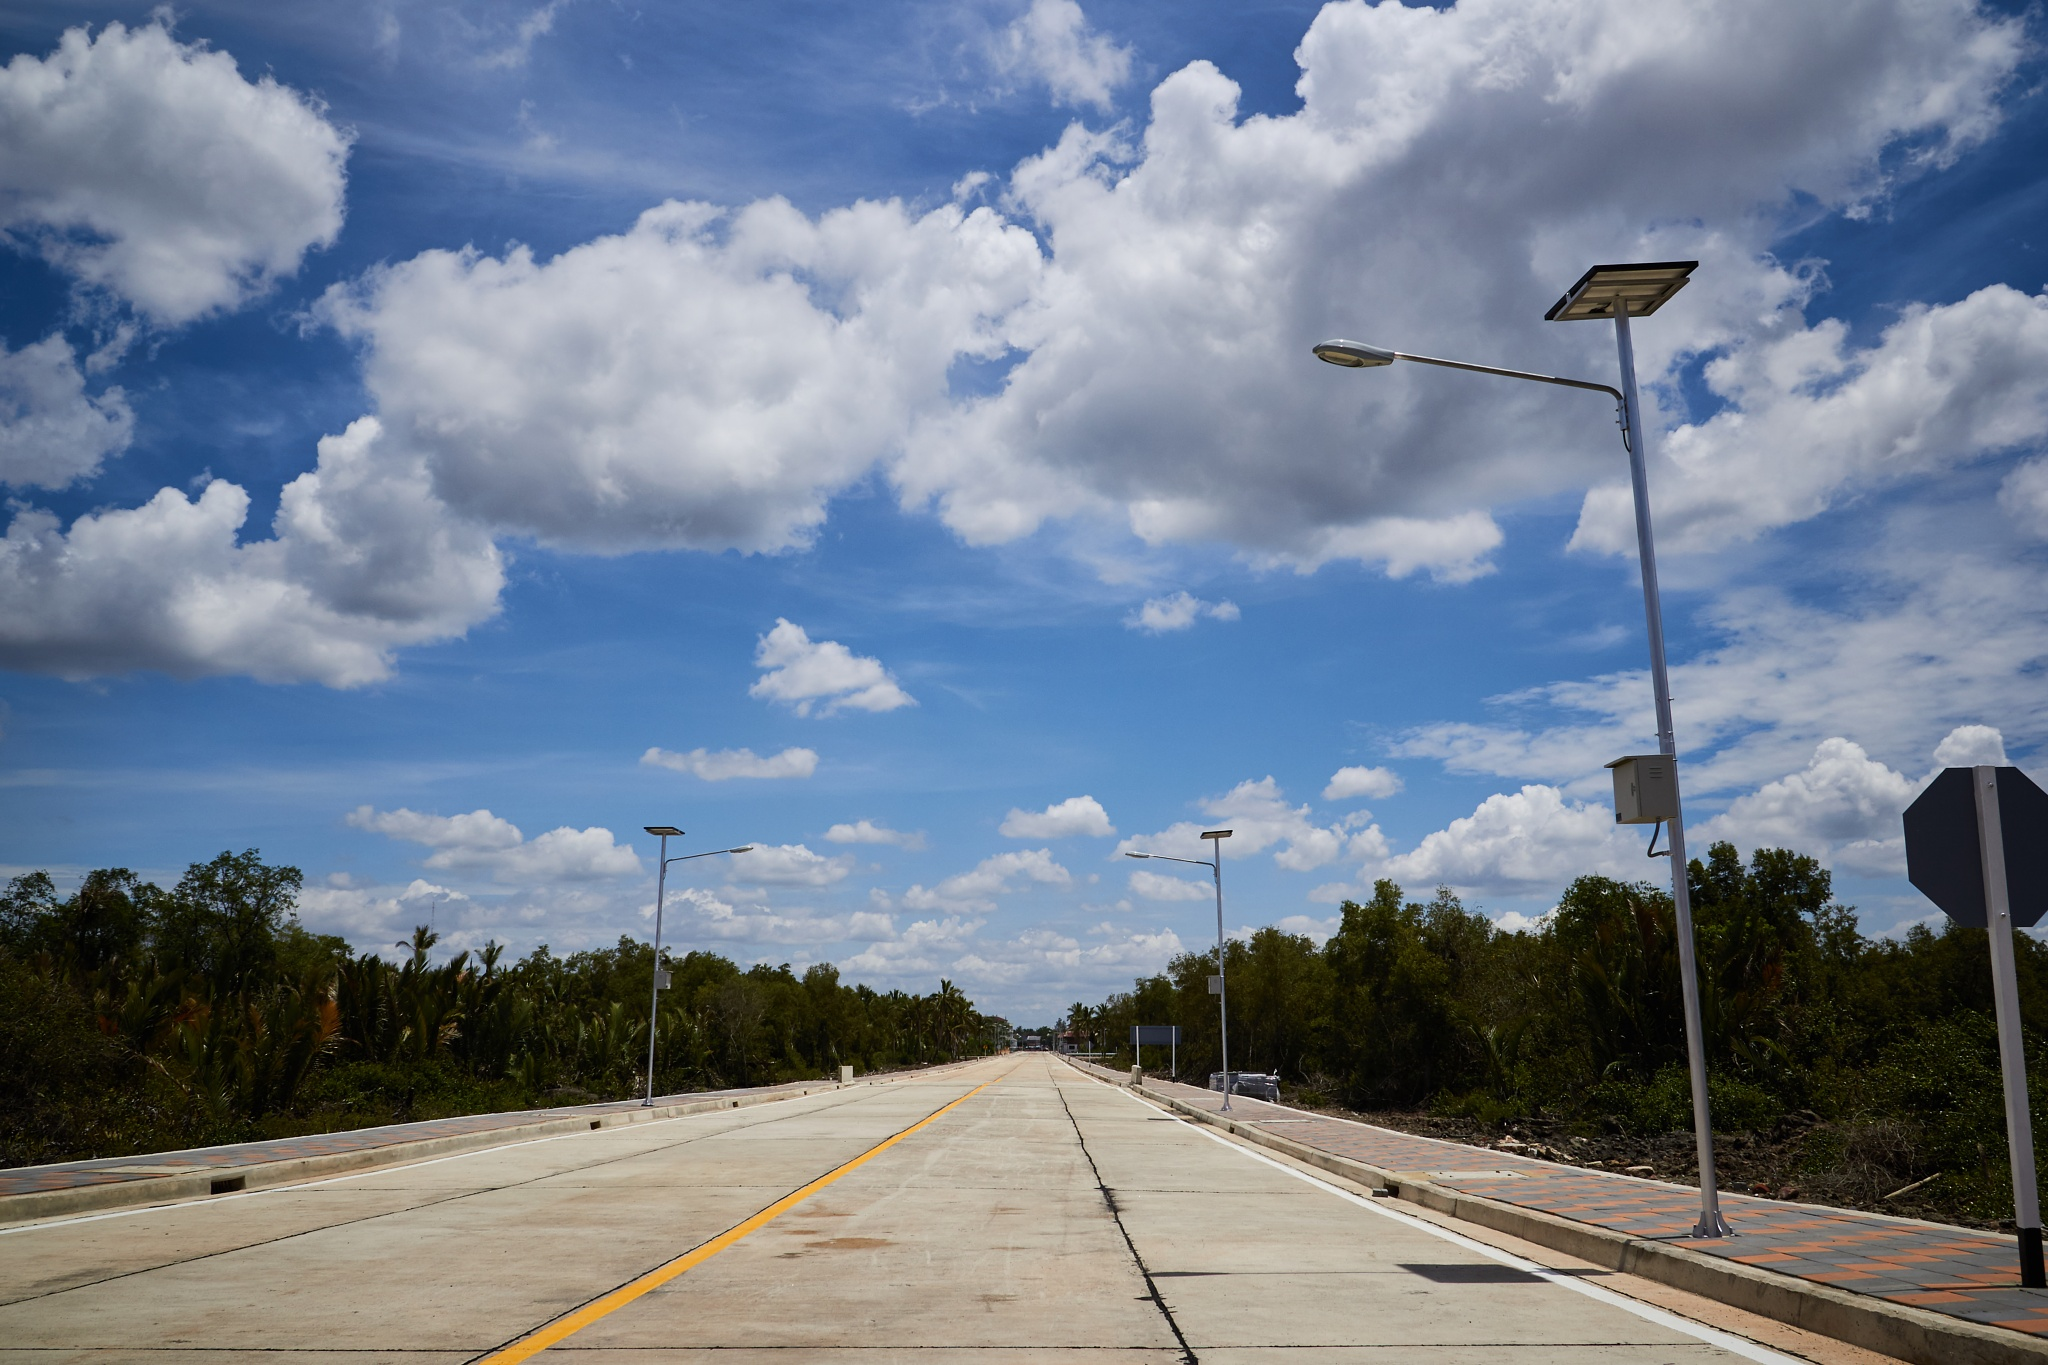 Road to blue sky by calgop